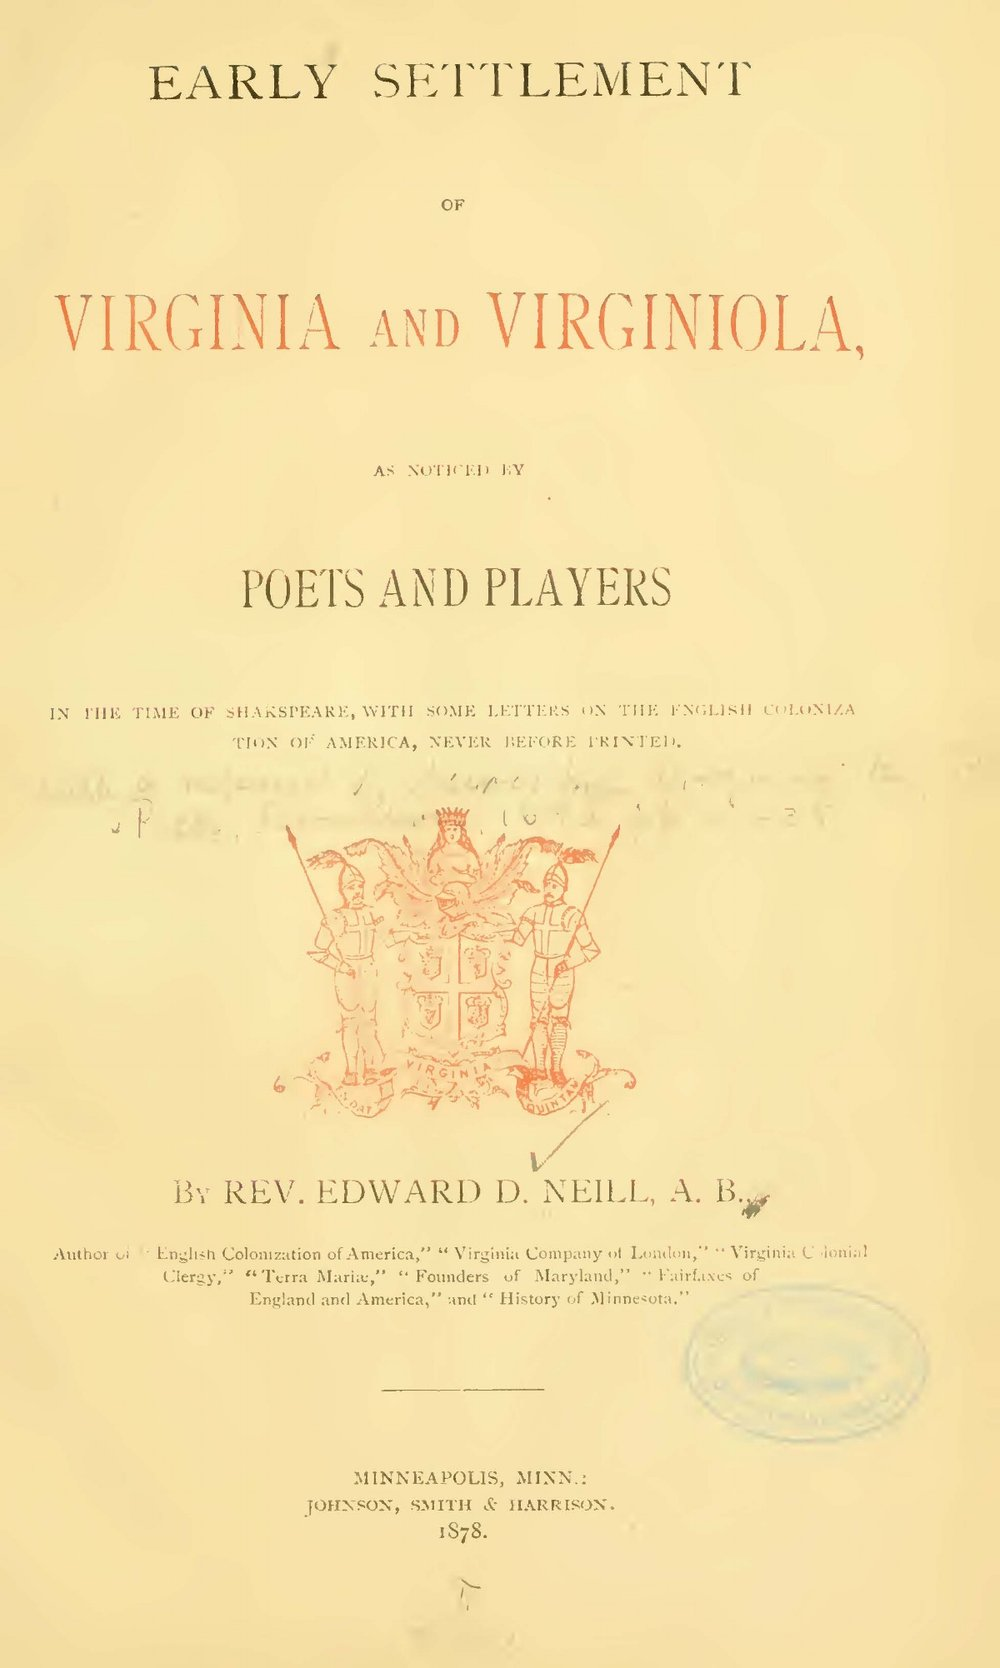 Neill, Edward Duffield, Early Settlement of Virginia and Virginiola, As Noticed by Poets and Players in the Time of Shakespeare Title Page.jpg